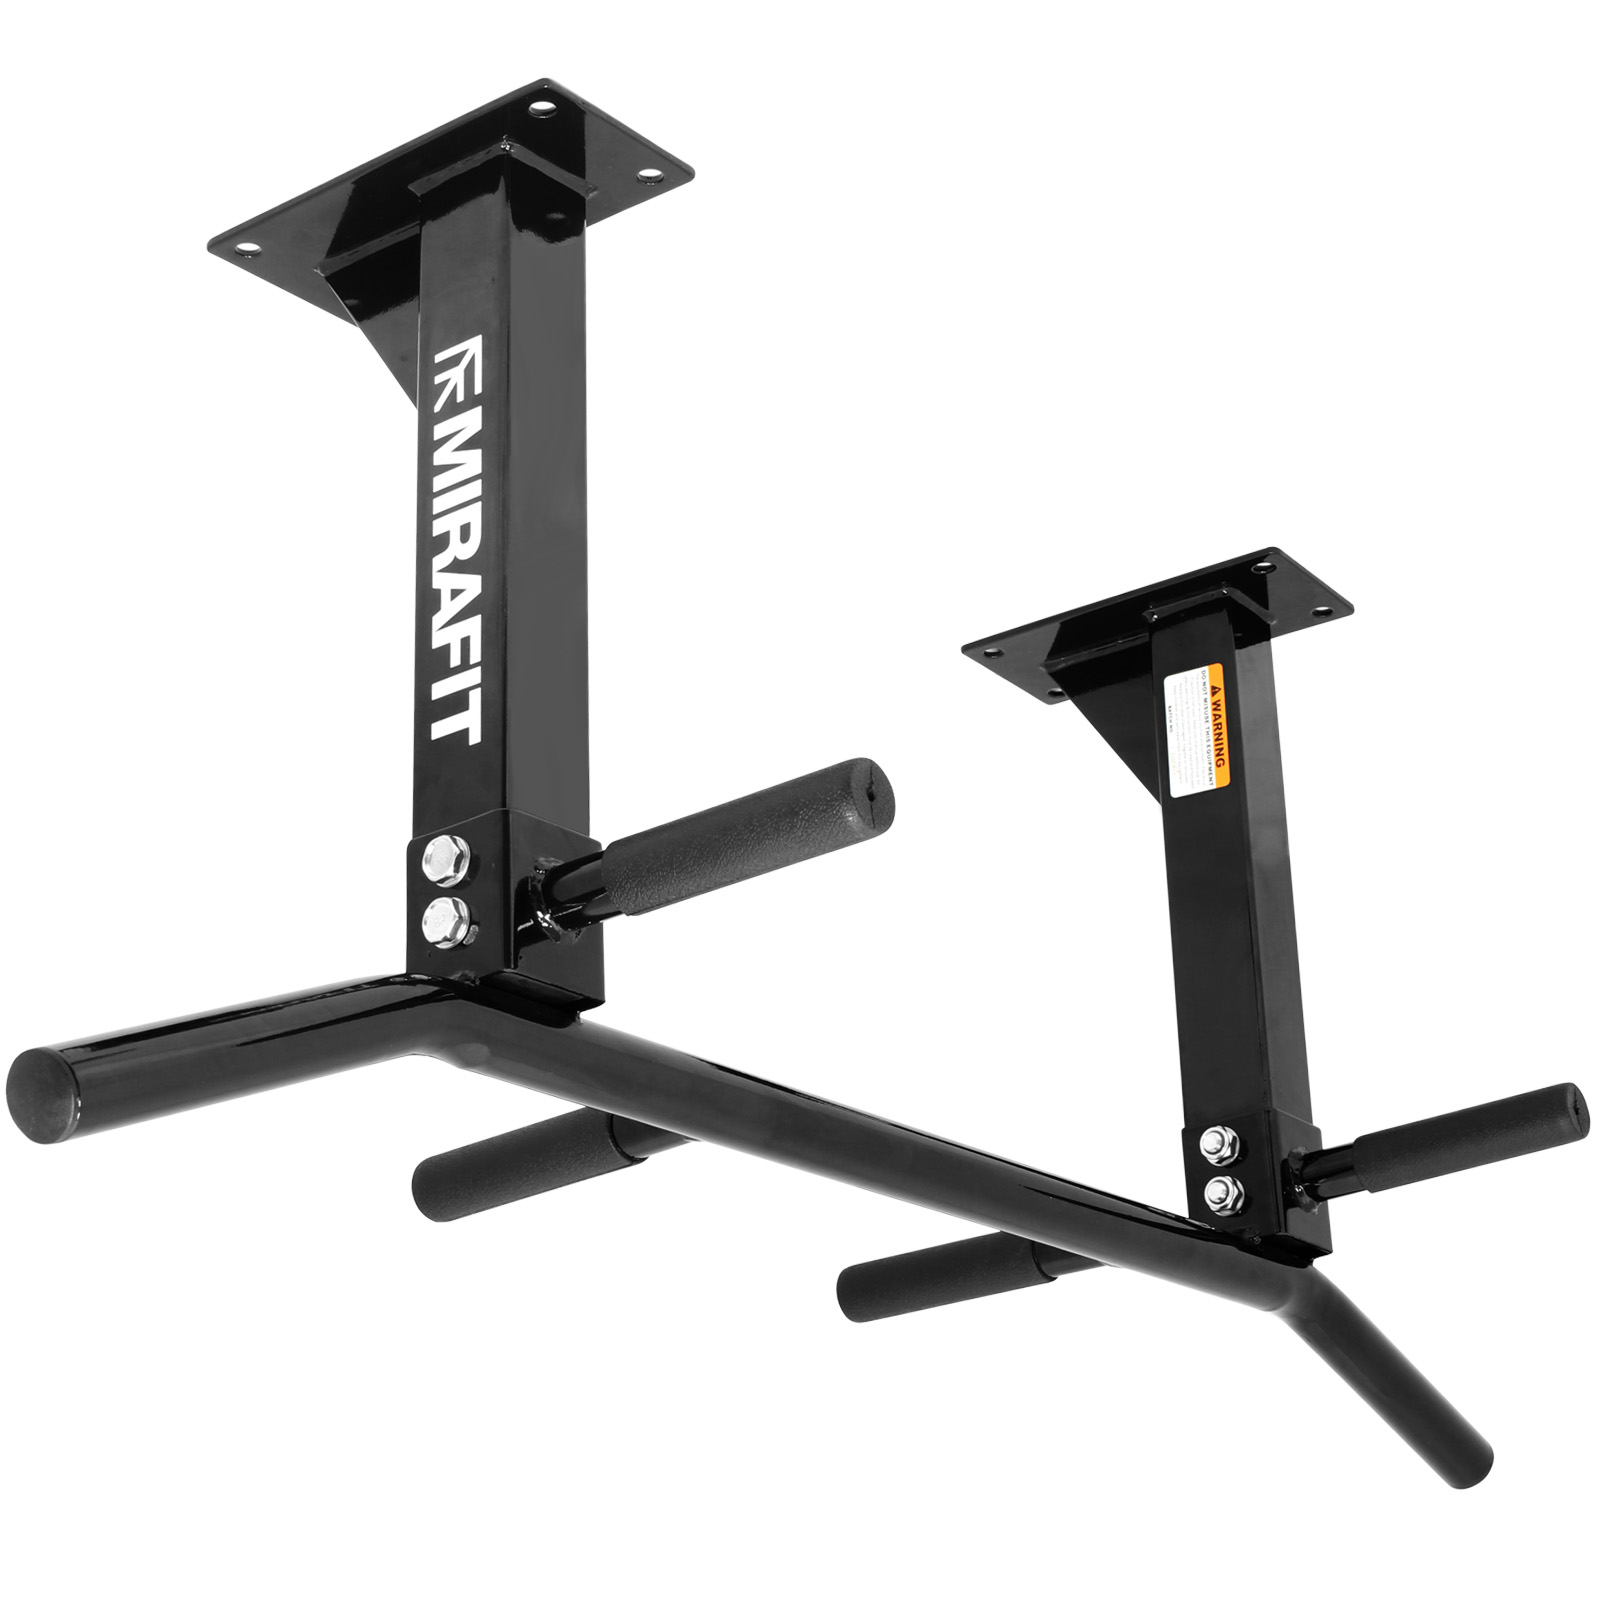 mirafit 3 position ceiling mount pull/chin up bar home/gym roof